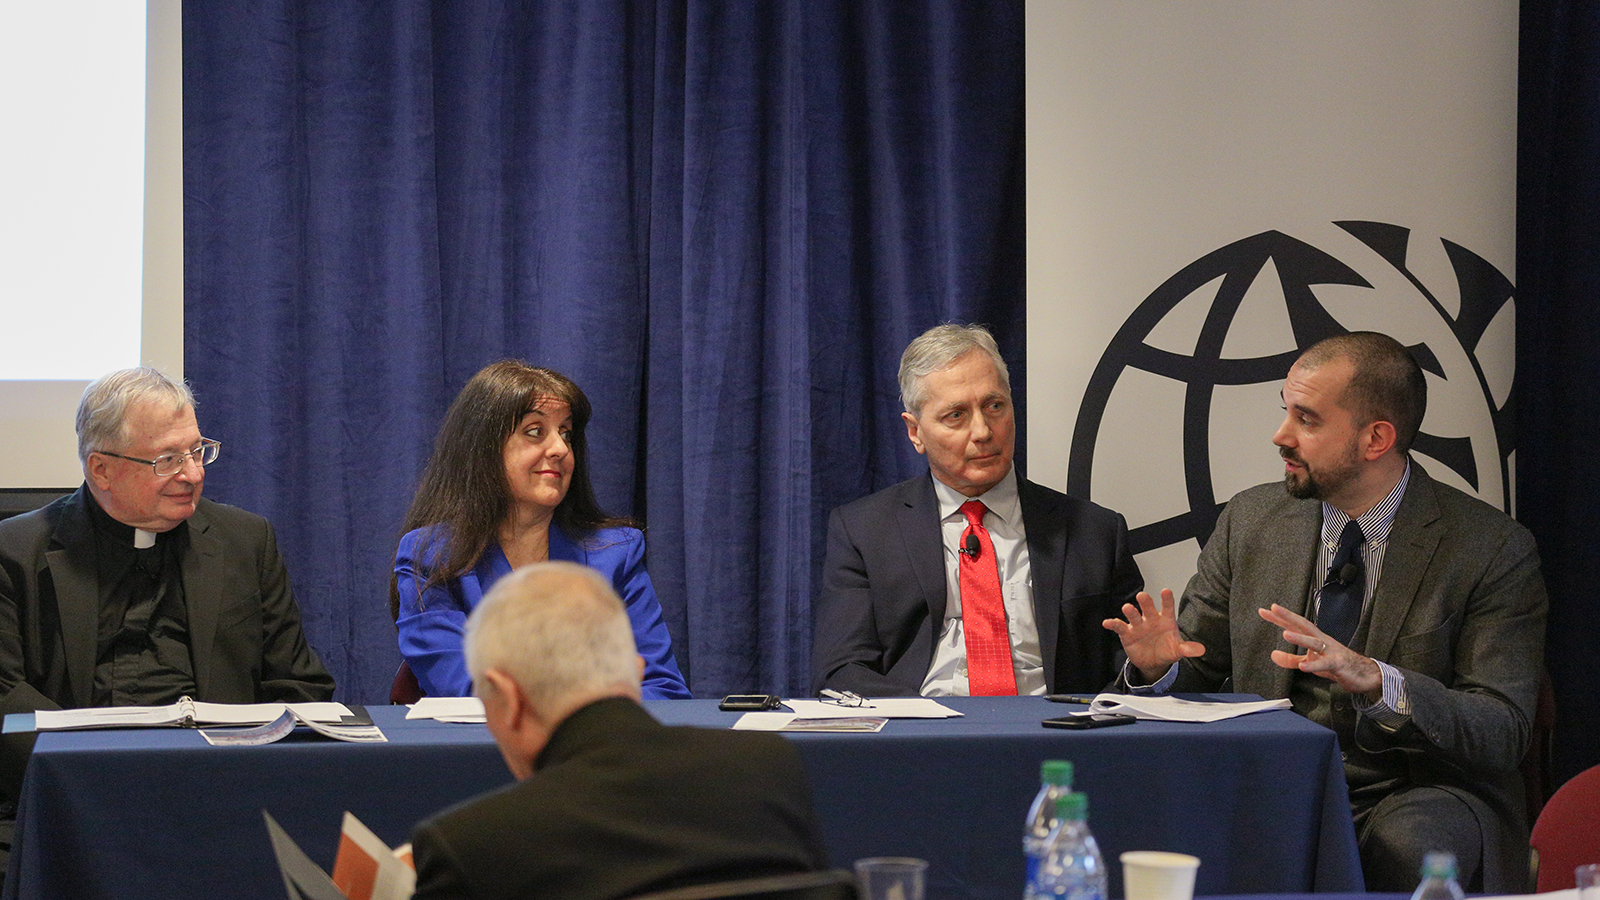 """Ethics and Pastoral Guidance"" panel: Rev. Drew Christiansen, Maryann Cusimano-Love, Gerard Powers, Alessio Pecorario."